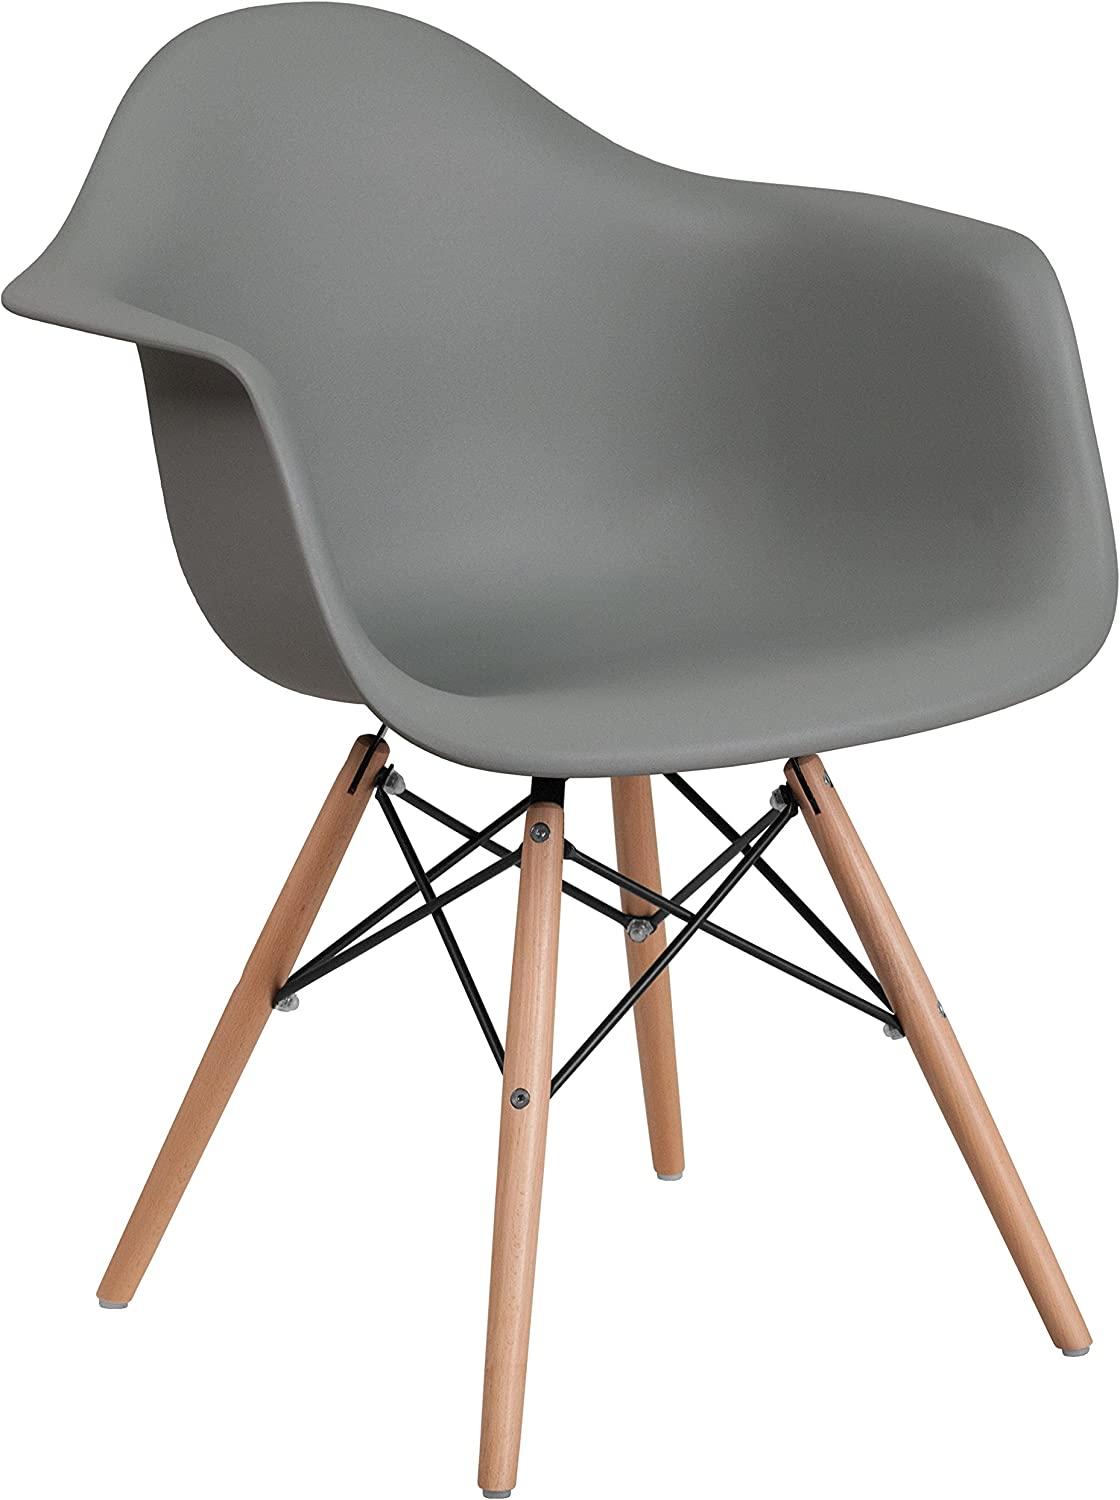 Flash Furniture Alonza Series Moss Gray Plastic Chair with Wooden Legs